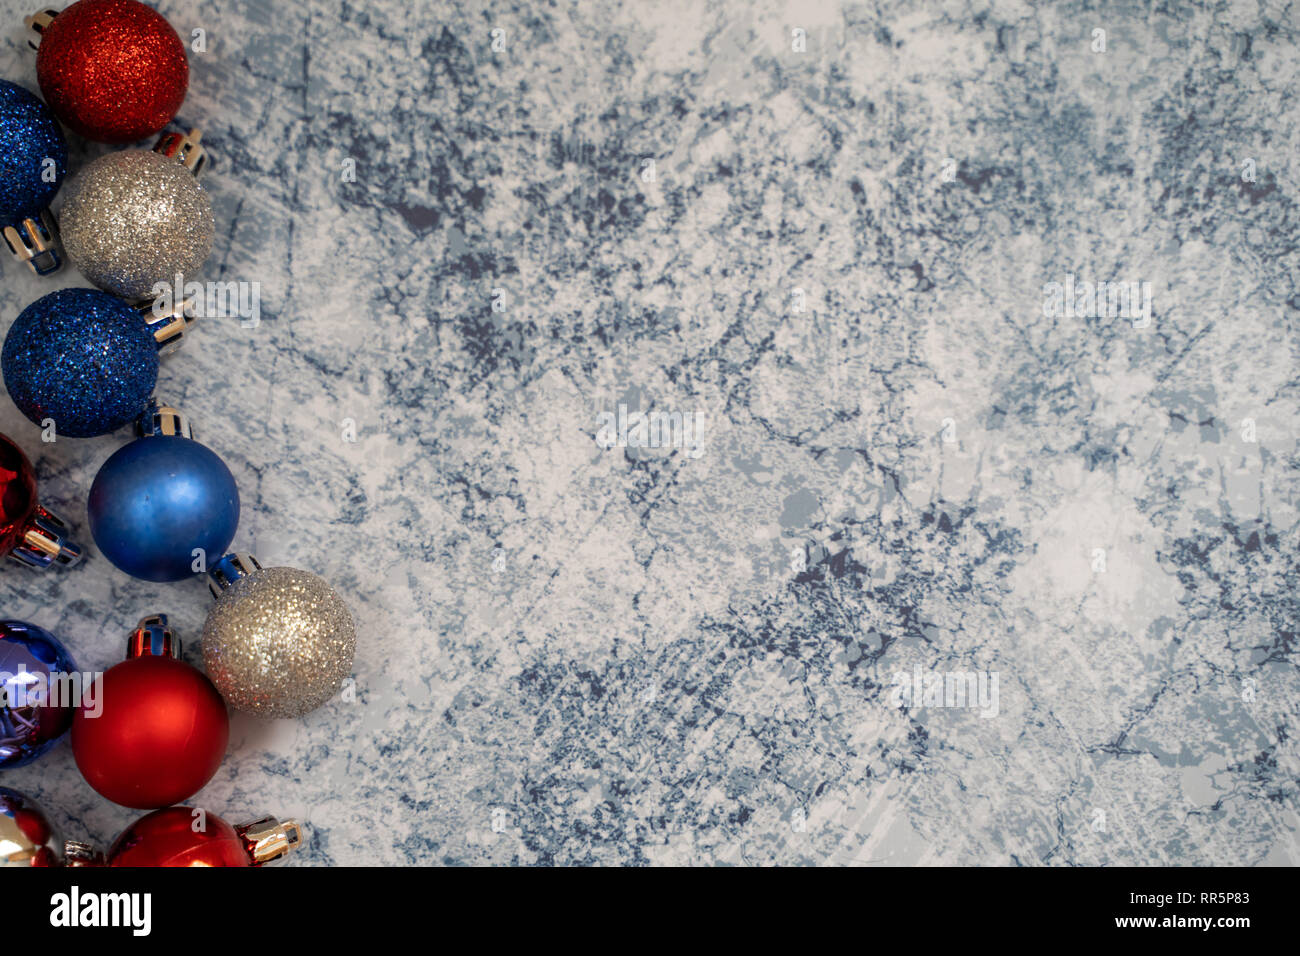 Festive Patriotic Usa American Christmas Background Featuring Ornaments In Red White And Blue Colors On Blue Marble Background Stock Photo Alamy